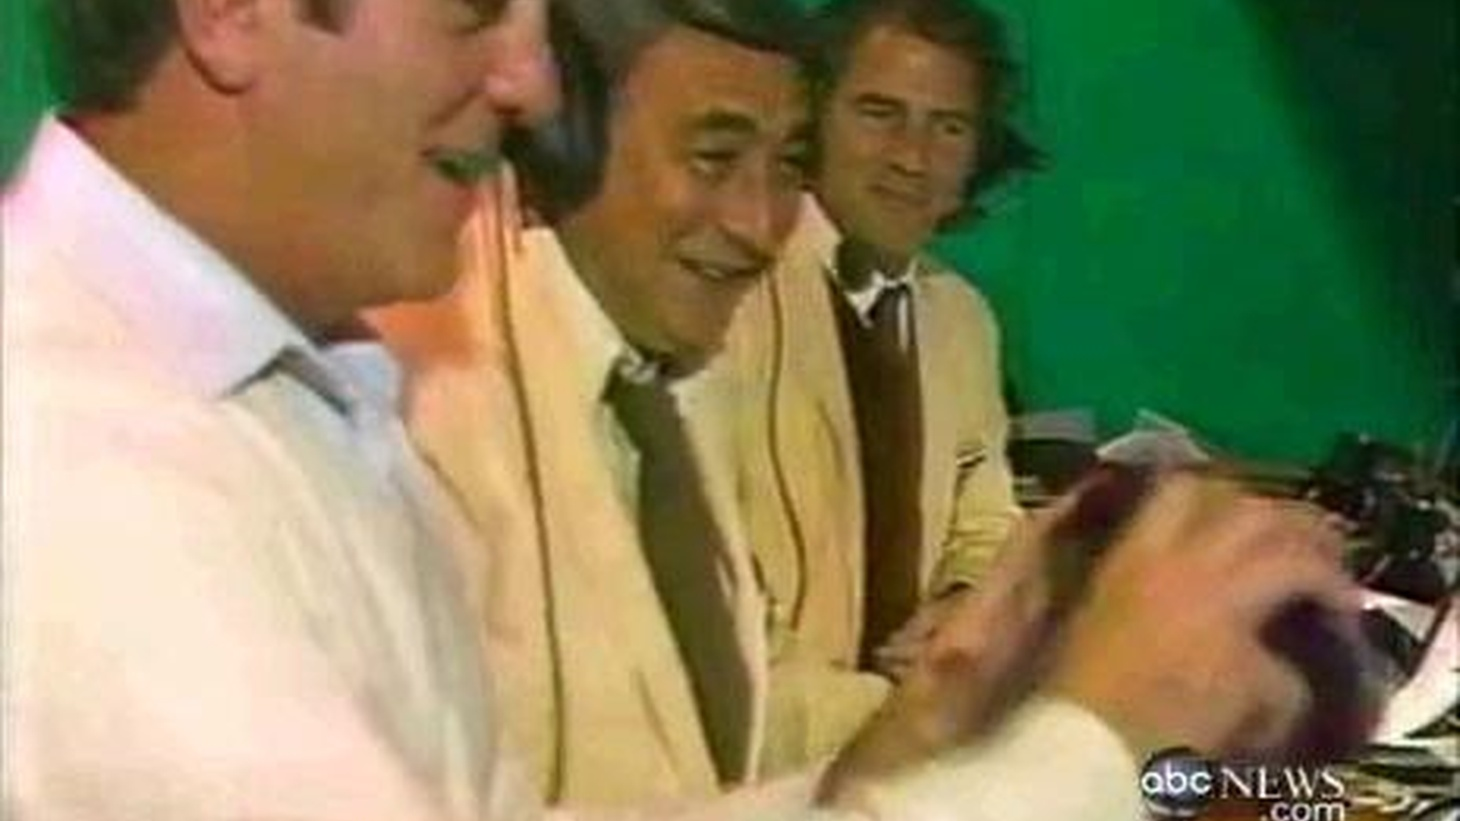 Former Dallas Cowboys quarterback and Monday Night Football personality Don Meredith passed away this week. In remembering the likeable Dandy Don, his Texas twang, his snakeskin cowboy boots and his irreverence in literally drinking and smoking pot live in the broadcast booth, the tribute tracks back to the man who put Don on the air...